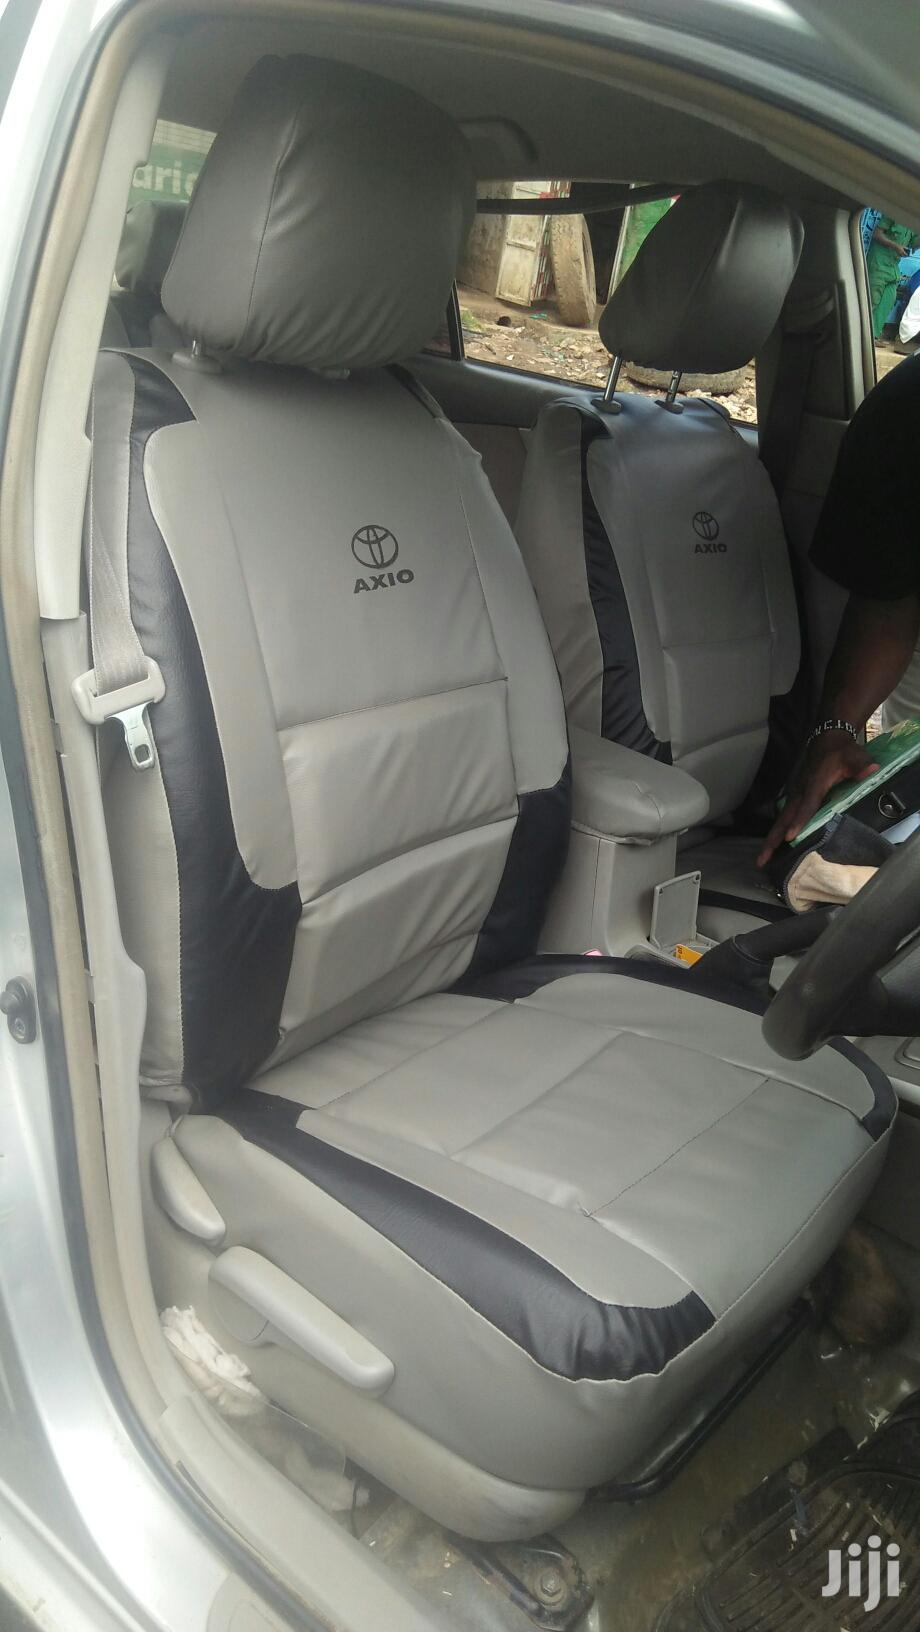 Axio Car Seat Covers | Vehicle Parts & Accessories for sale in Tudor, Mombasa, Kenya